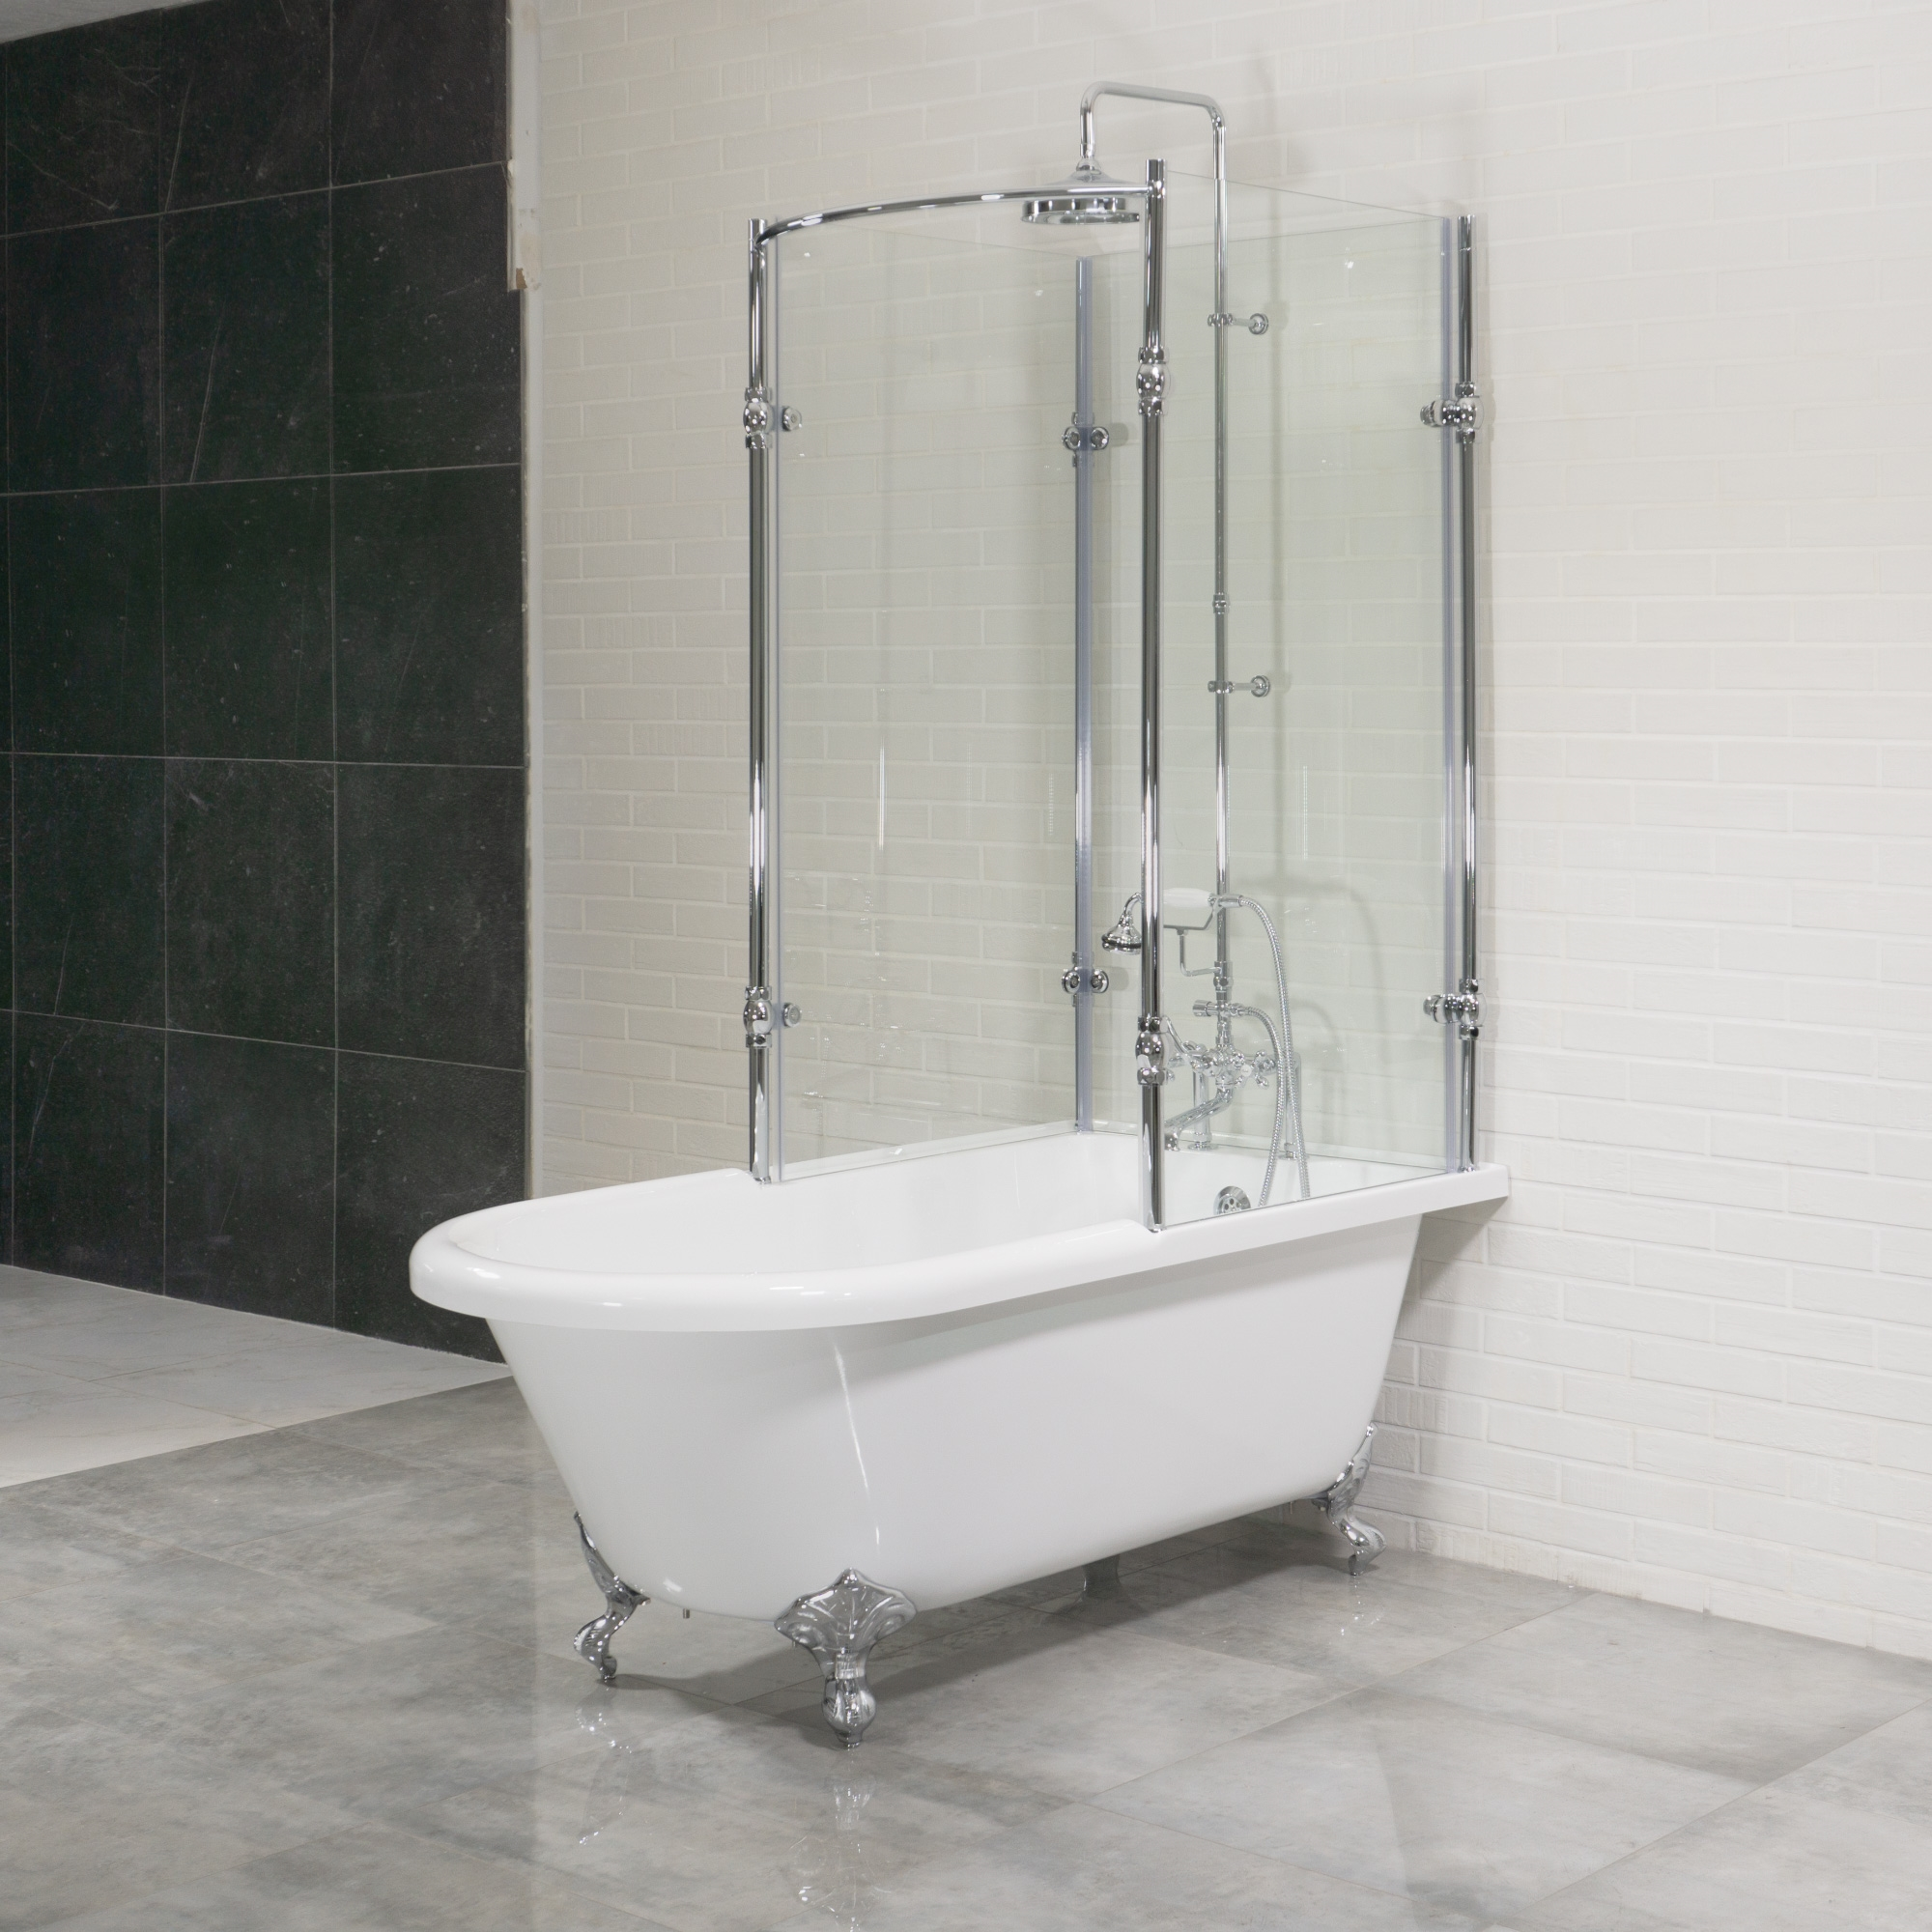 clawfoot tub glass shower enclosure. Oasis 59  Vintage Extra Wide Clawfoot Tub with Tempered Glass Shower Enclosure Package Antique Surround